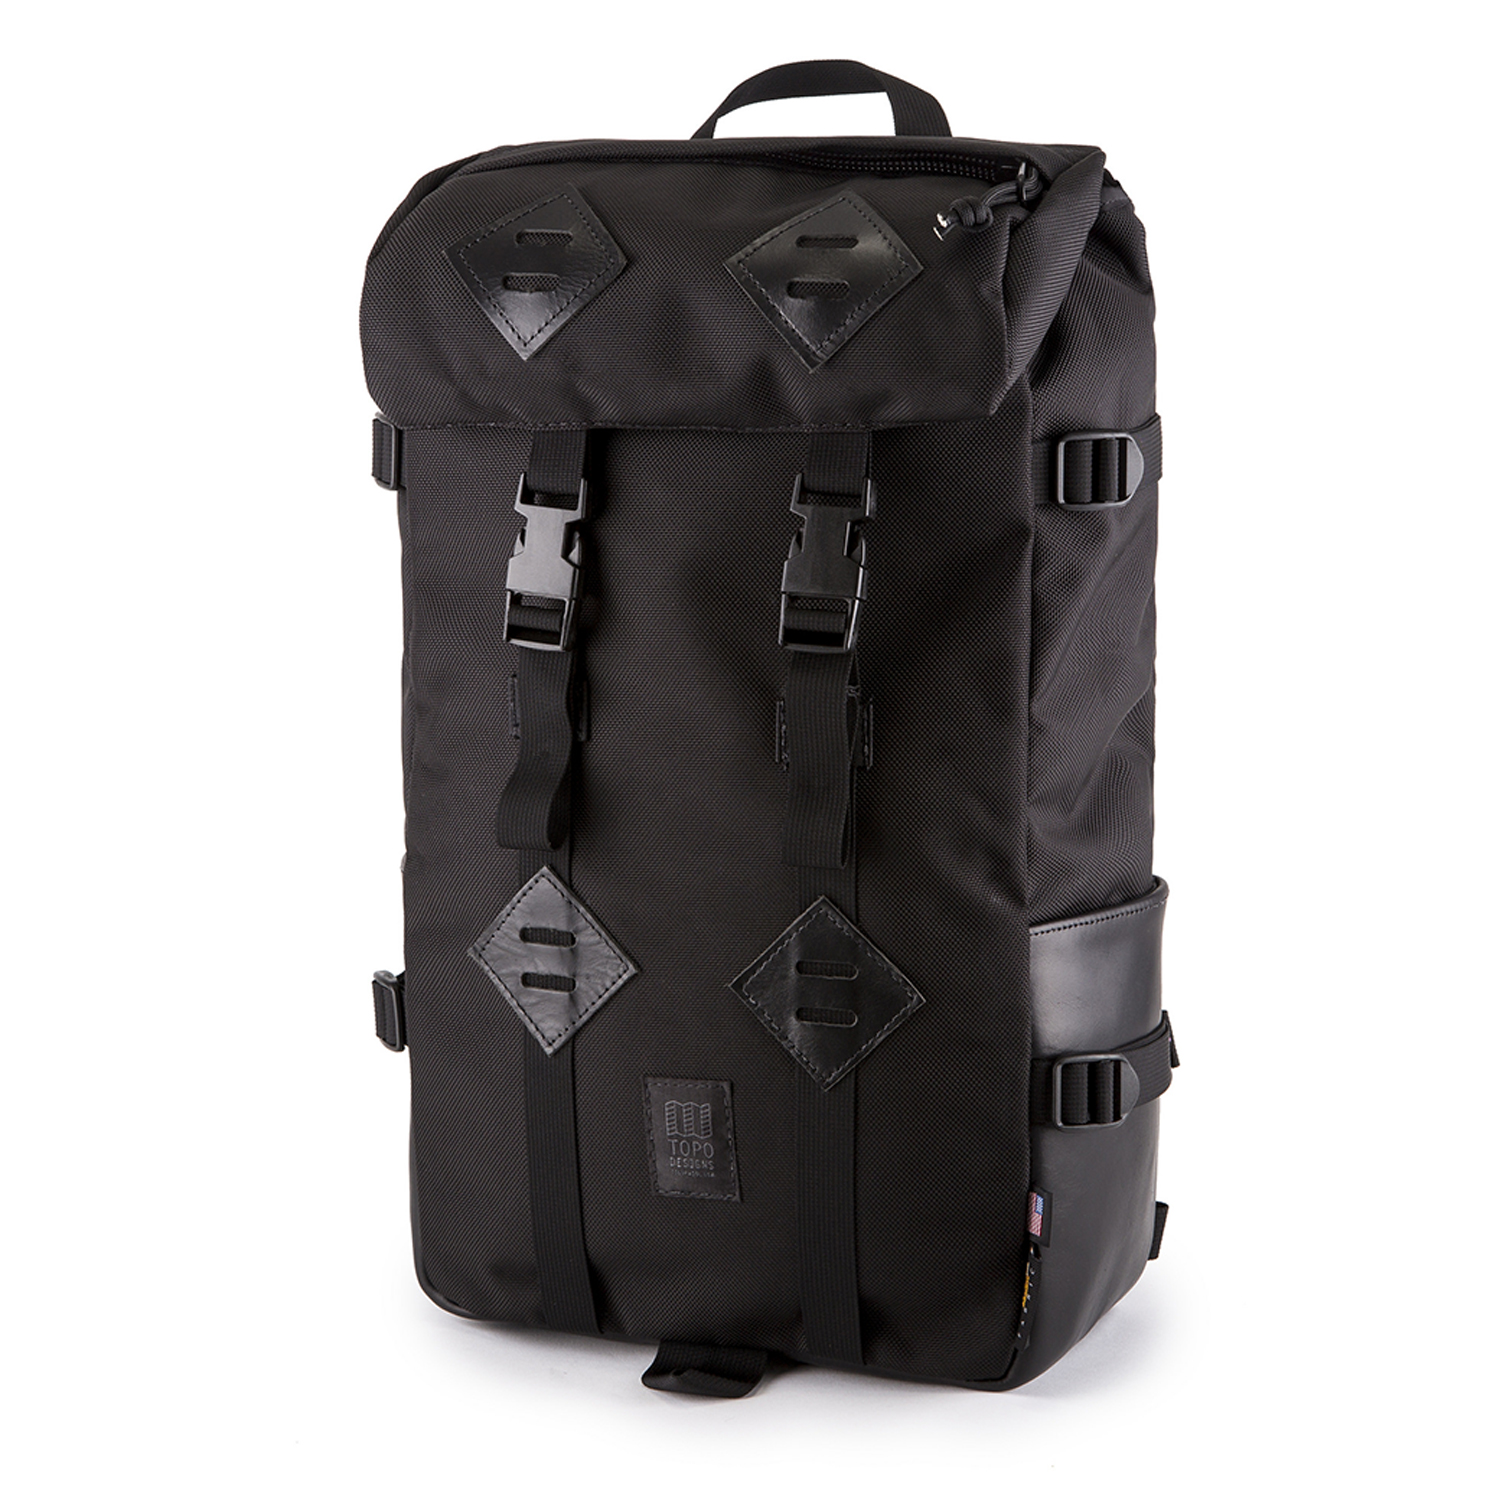 Carry - Every excursion requires a good bag. ($189)